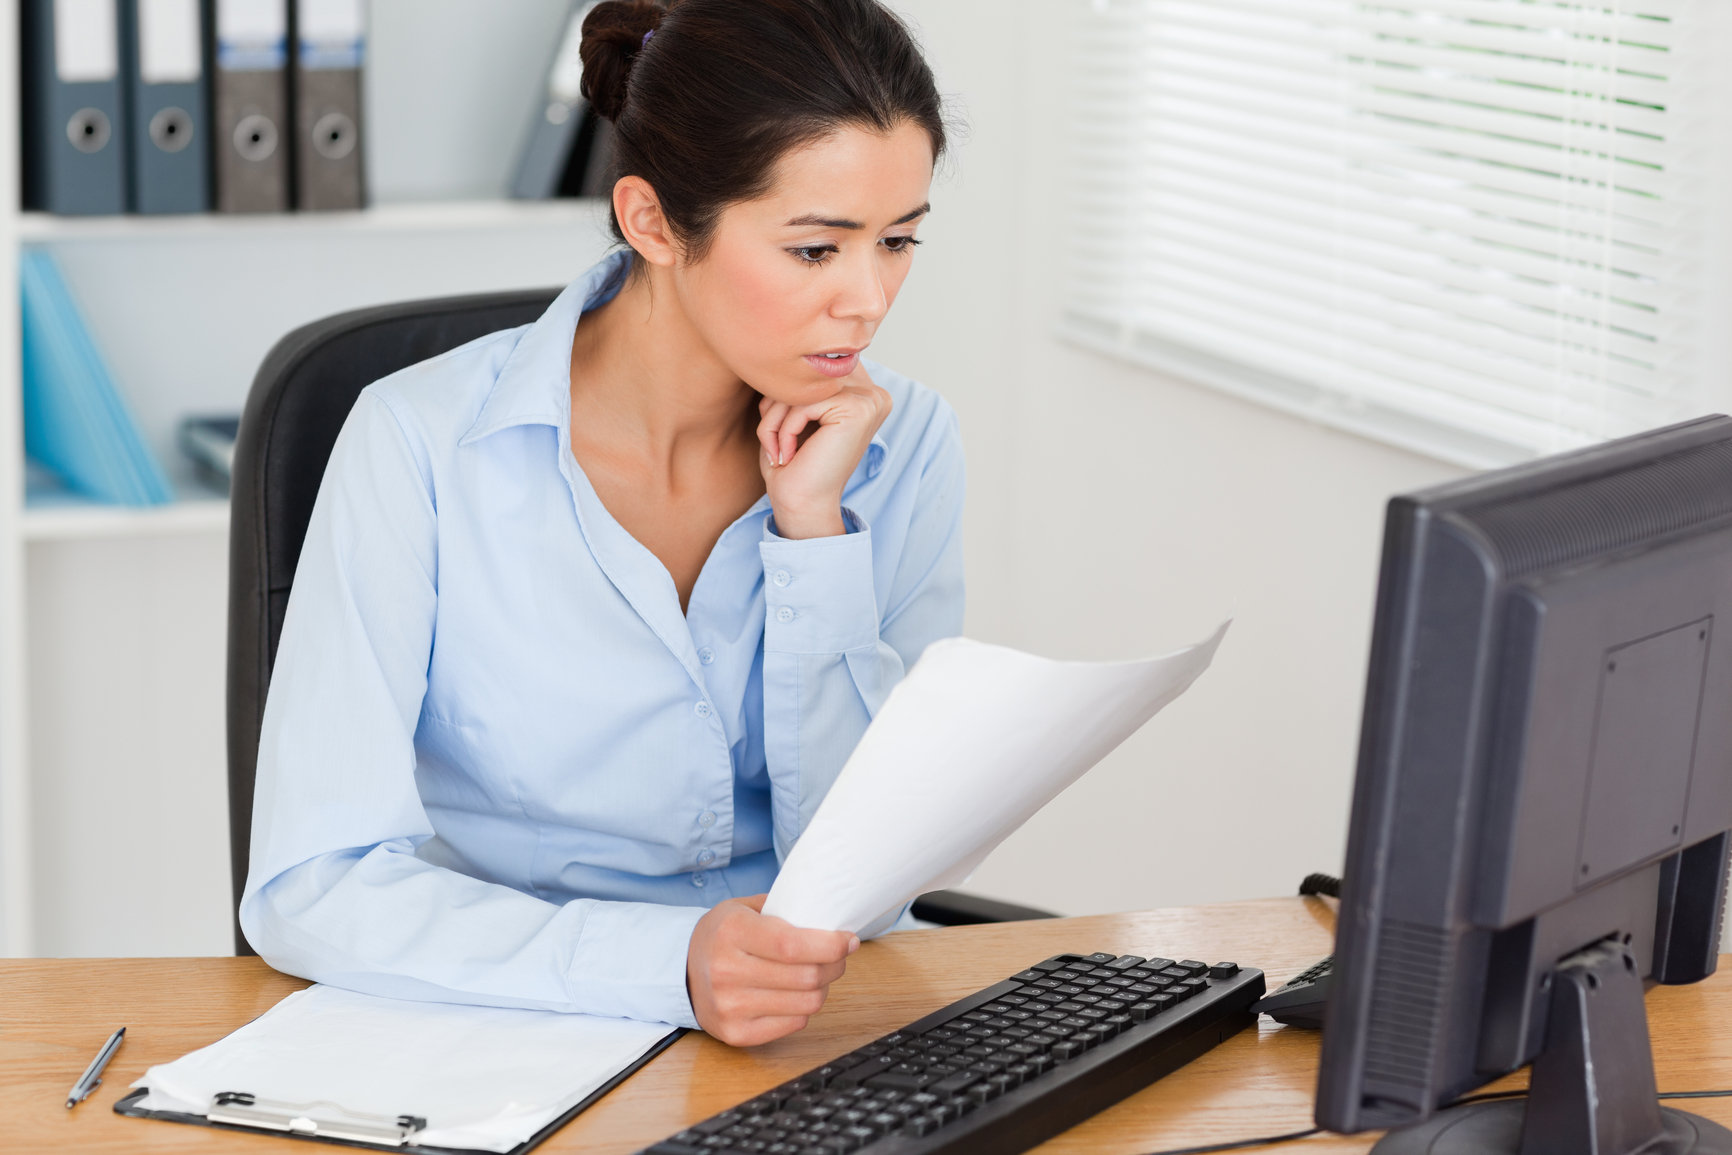 Gorgeous woman looking at a computer screen while holding a sheet of paper at the office